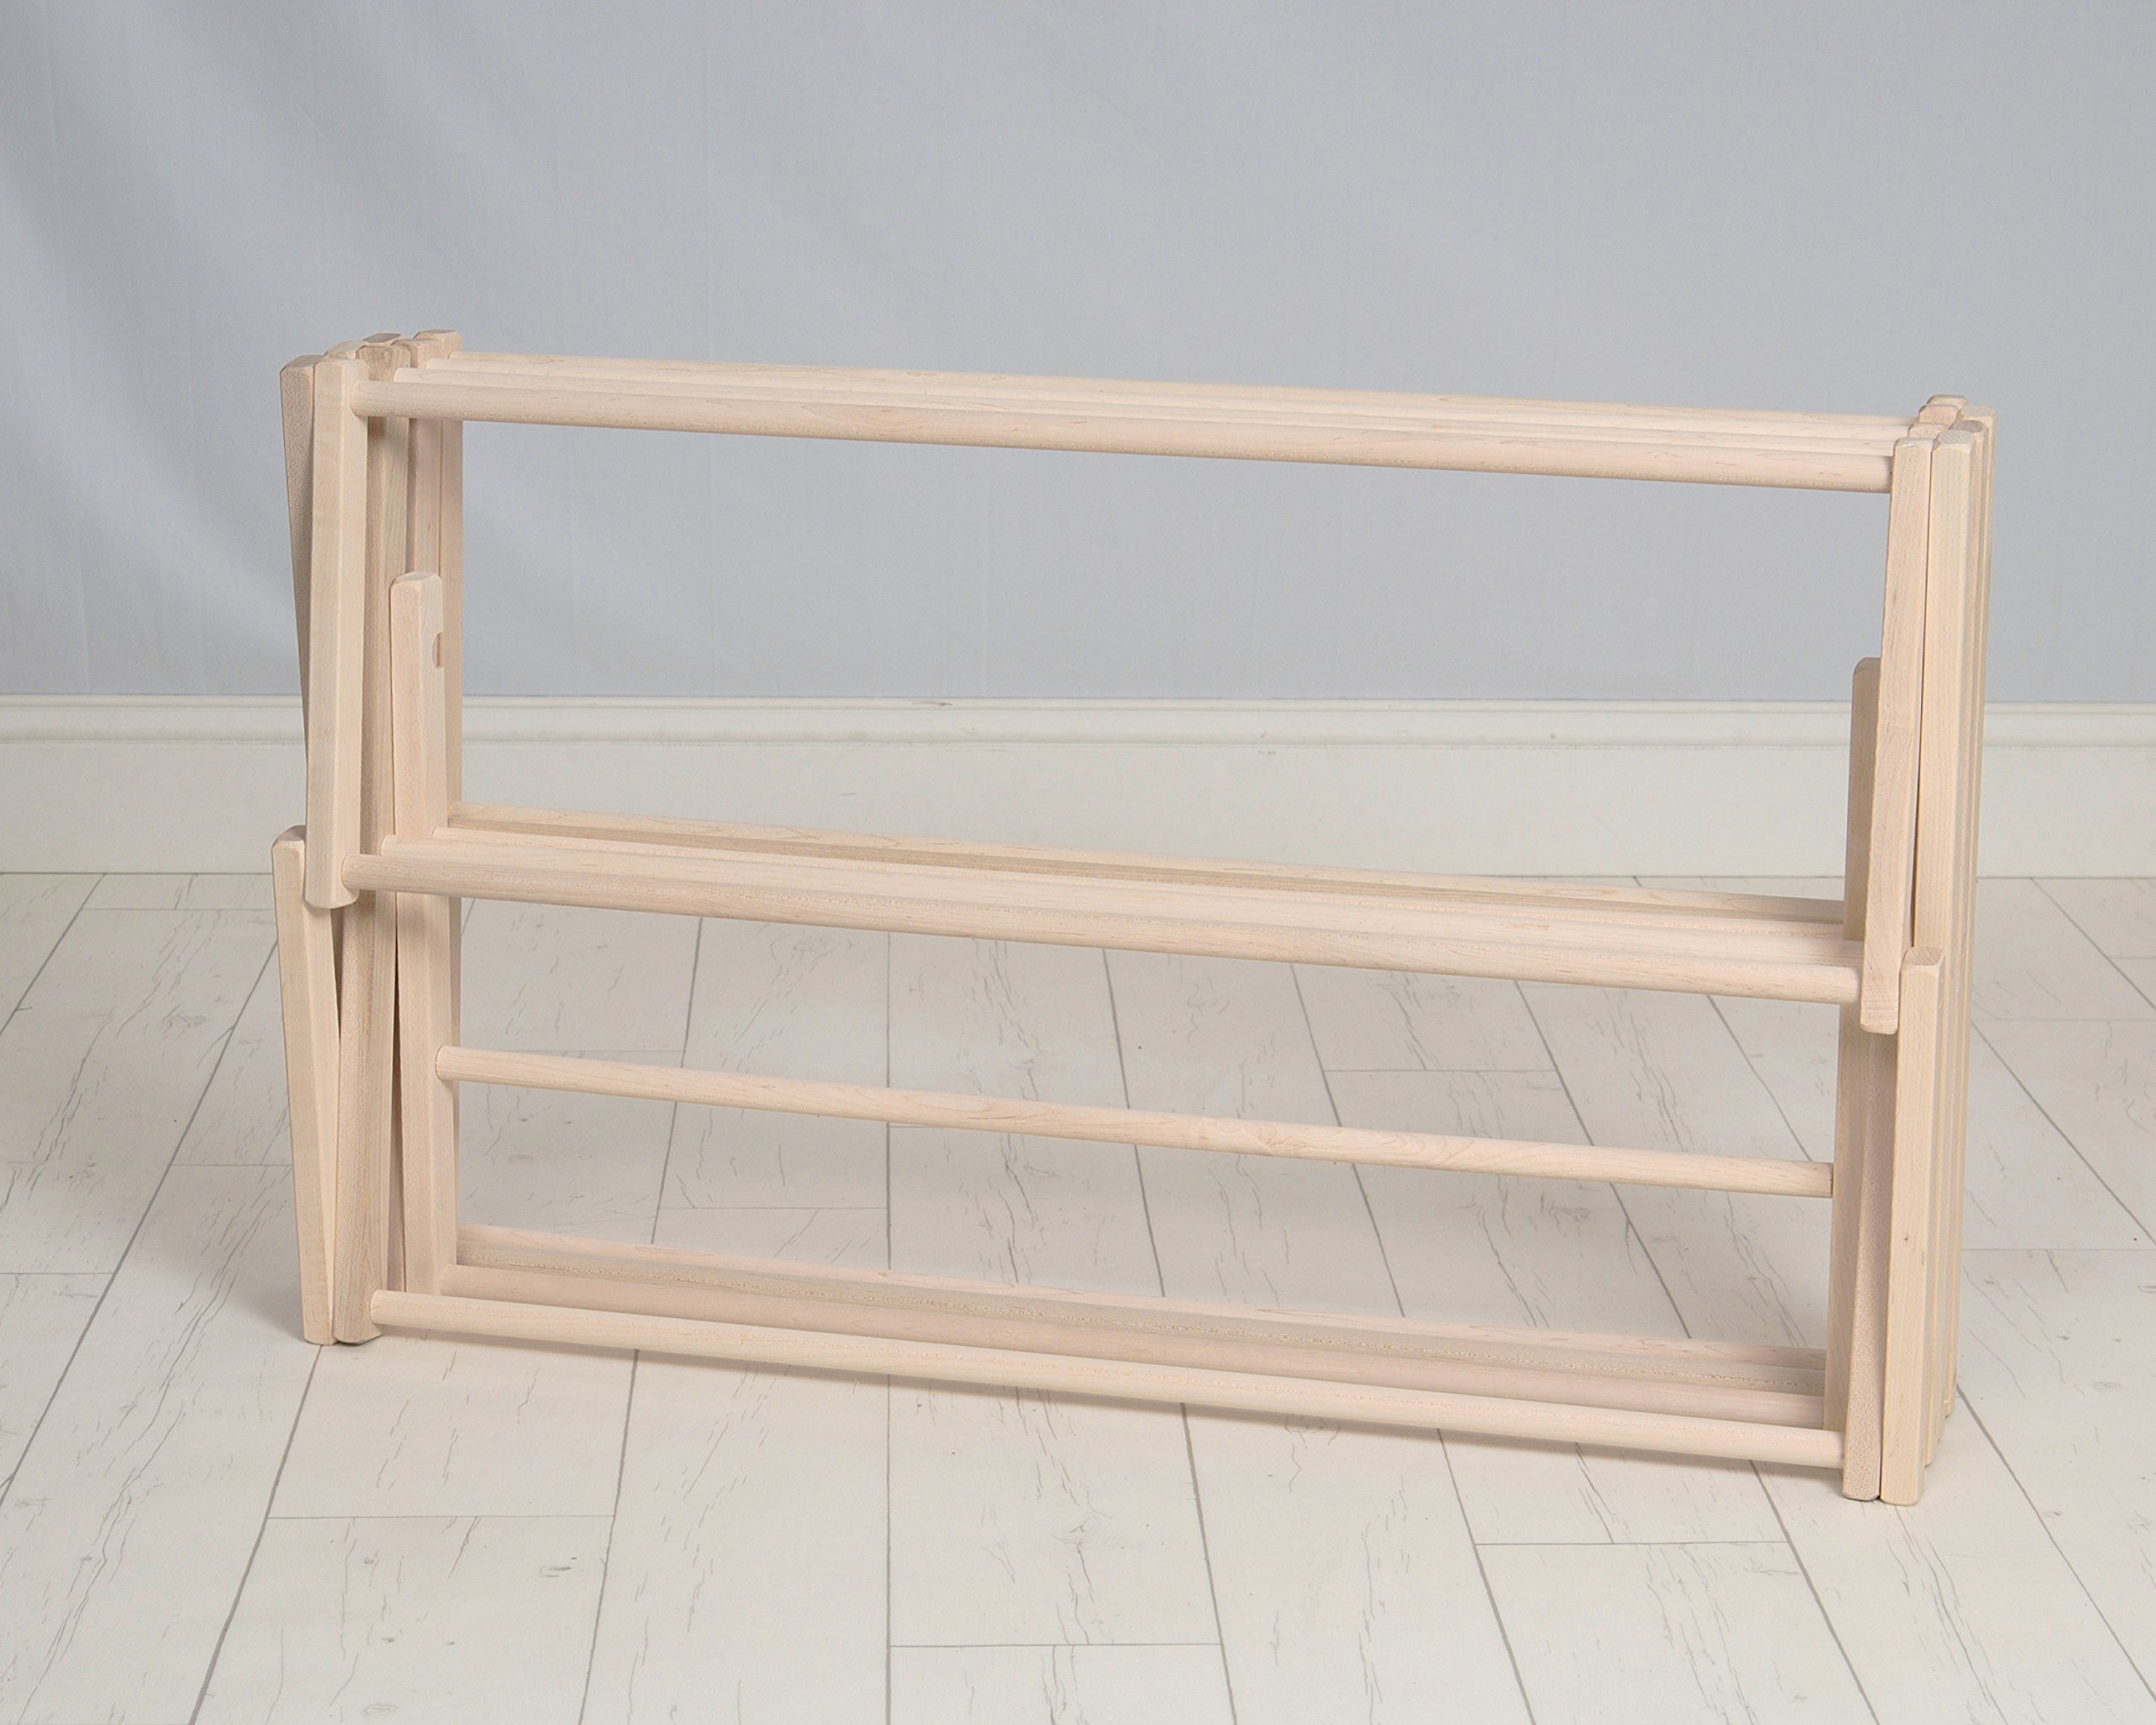 Pennsylvania Woodworks Clothes Drying Rack (Made in the USA) Heavy Duty 100% Hardwood (Large) by Pennsylvania Woodworks (Image #5)